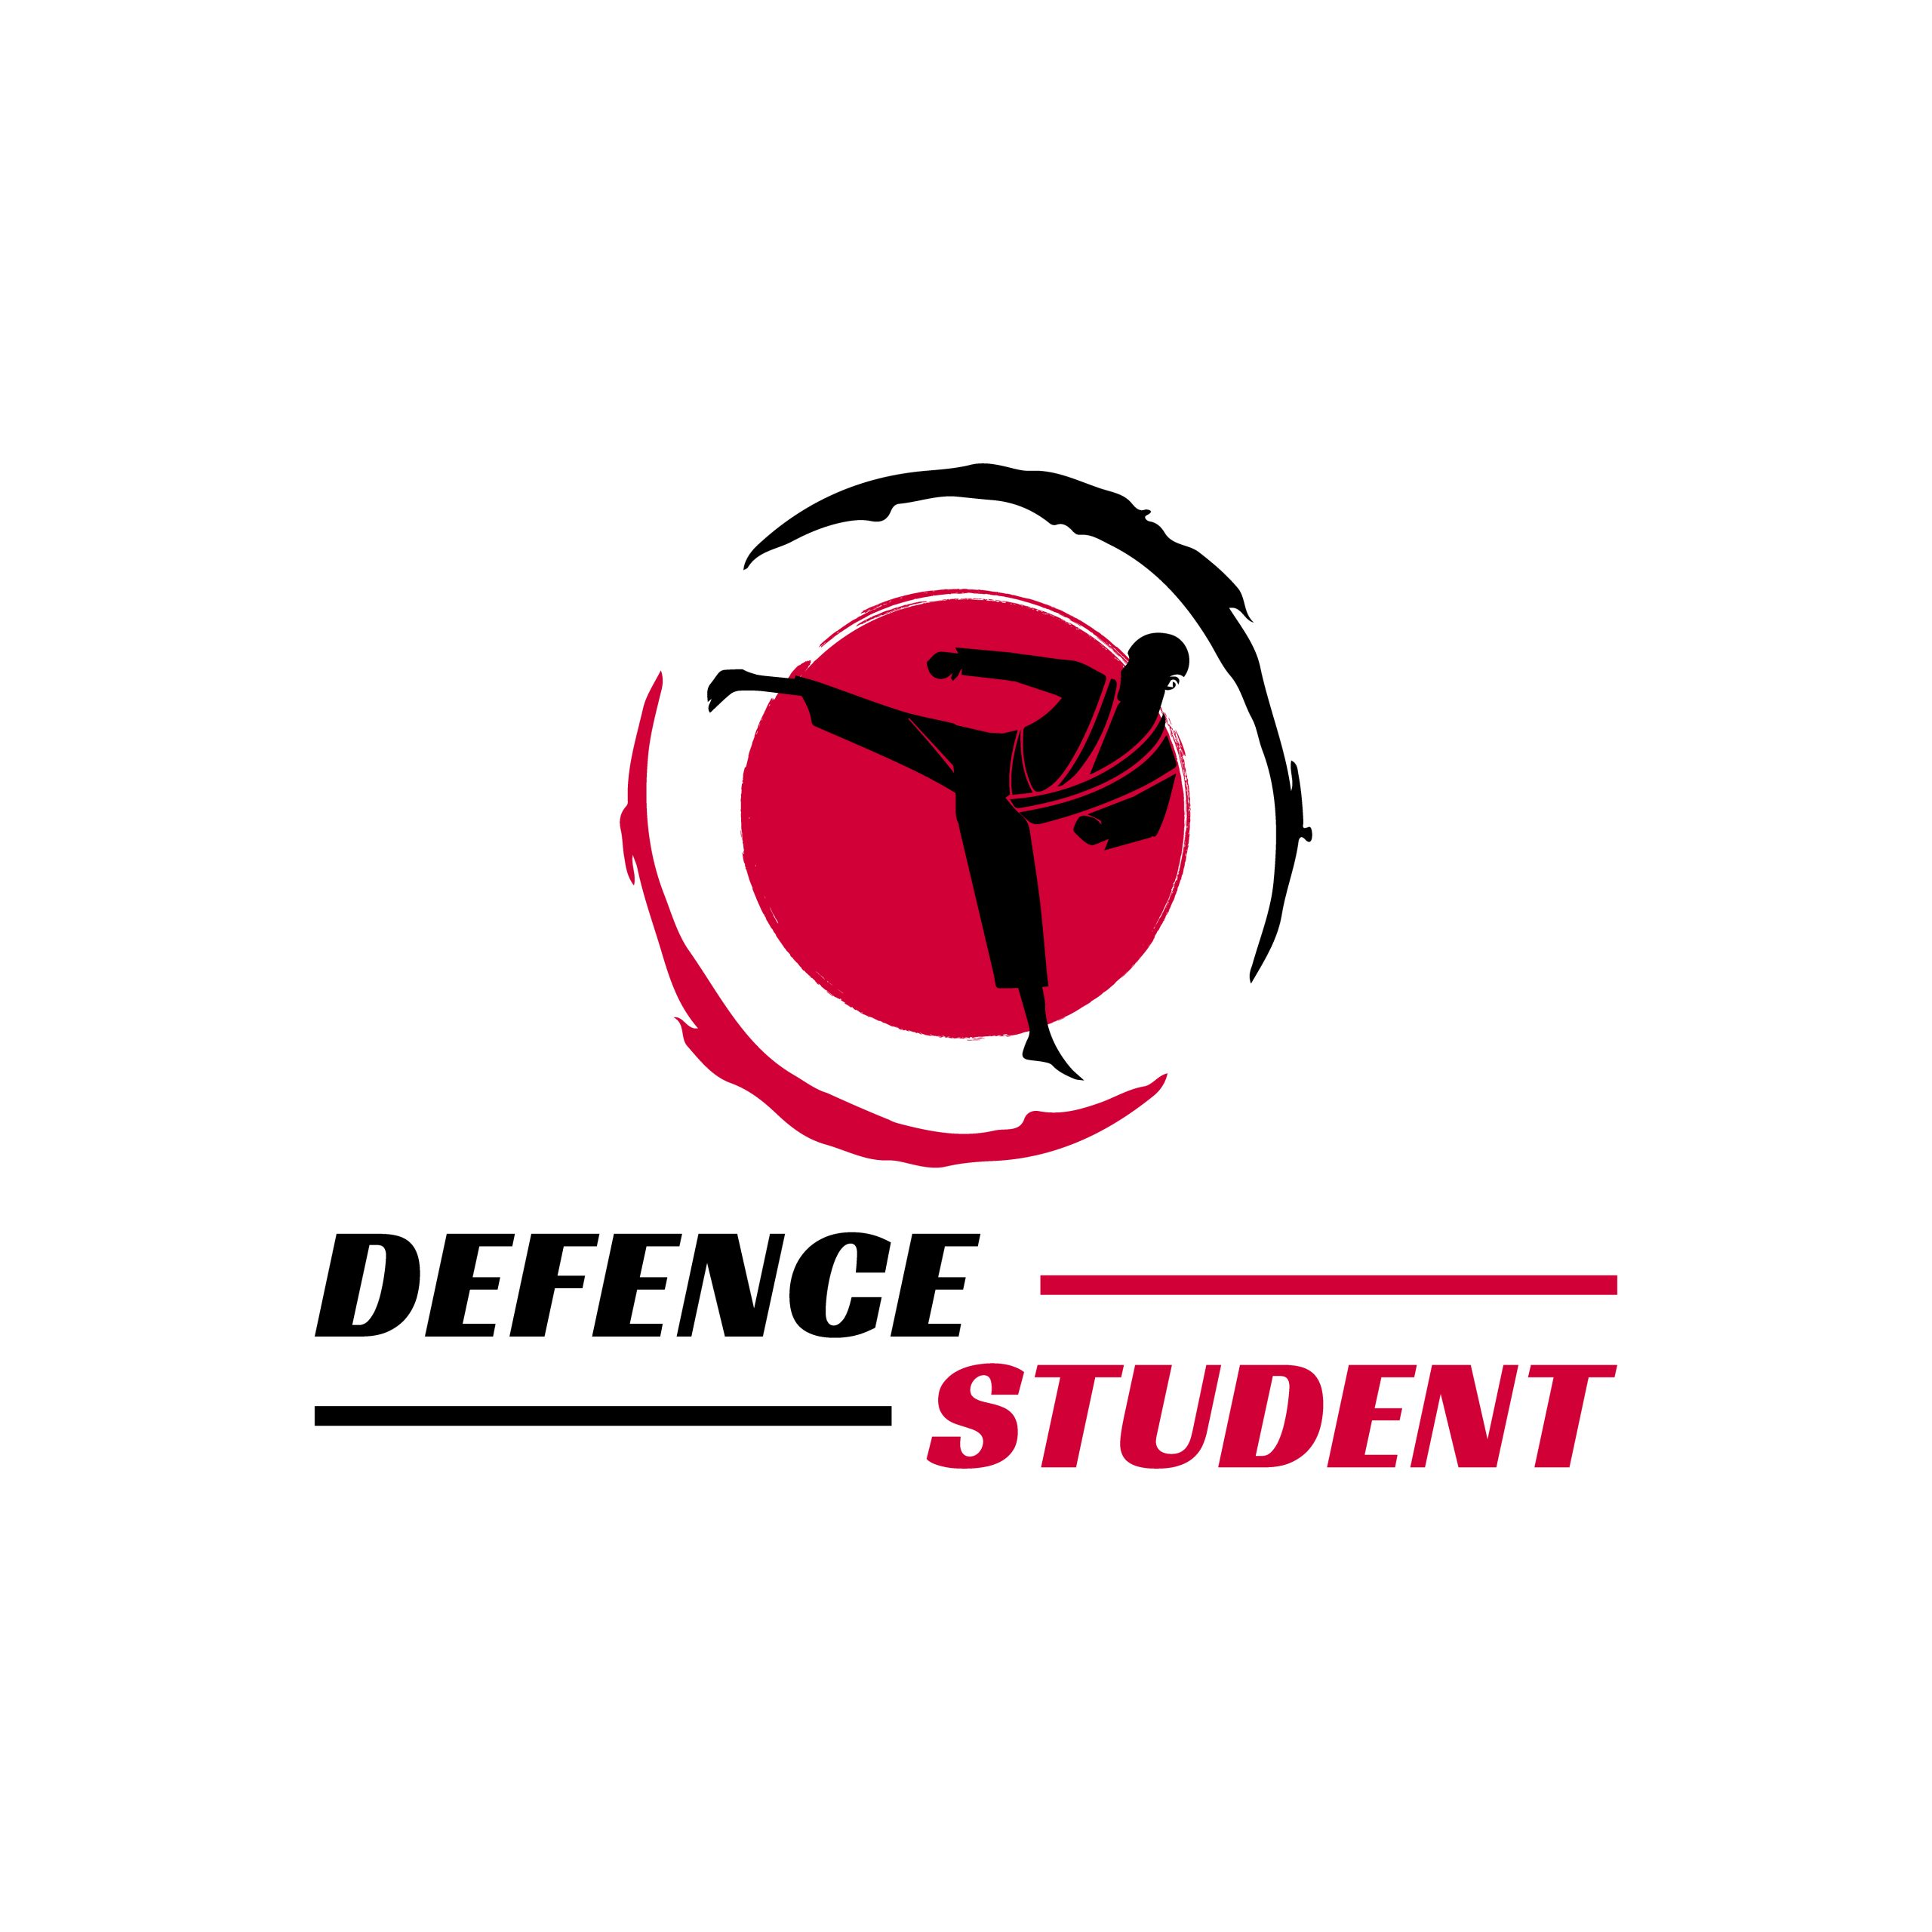 Defence Student